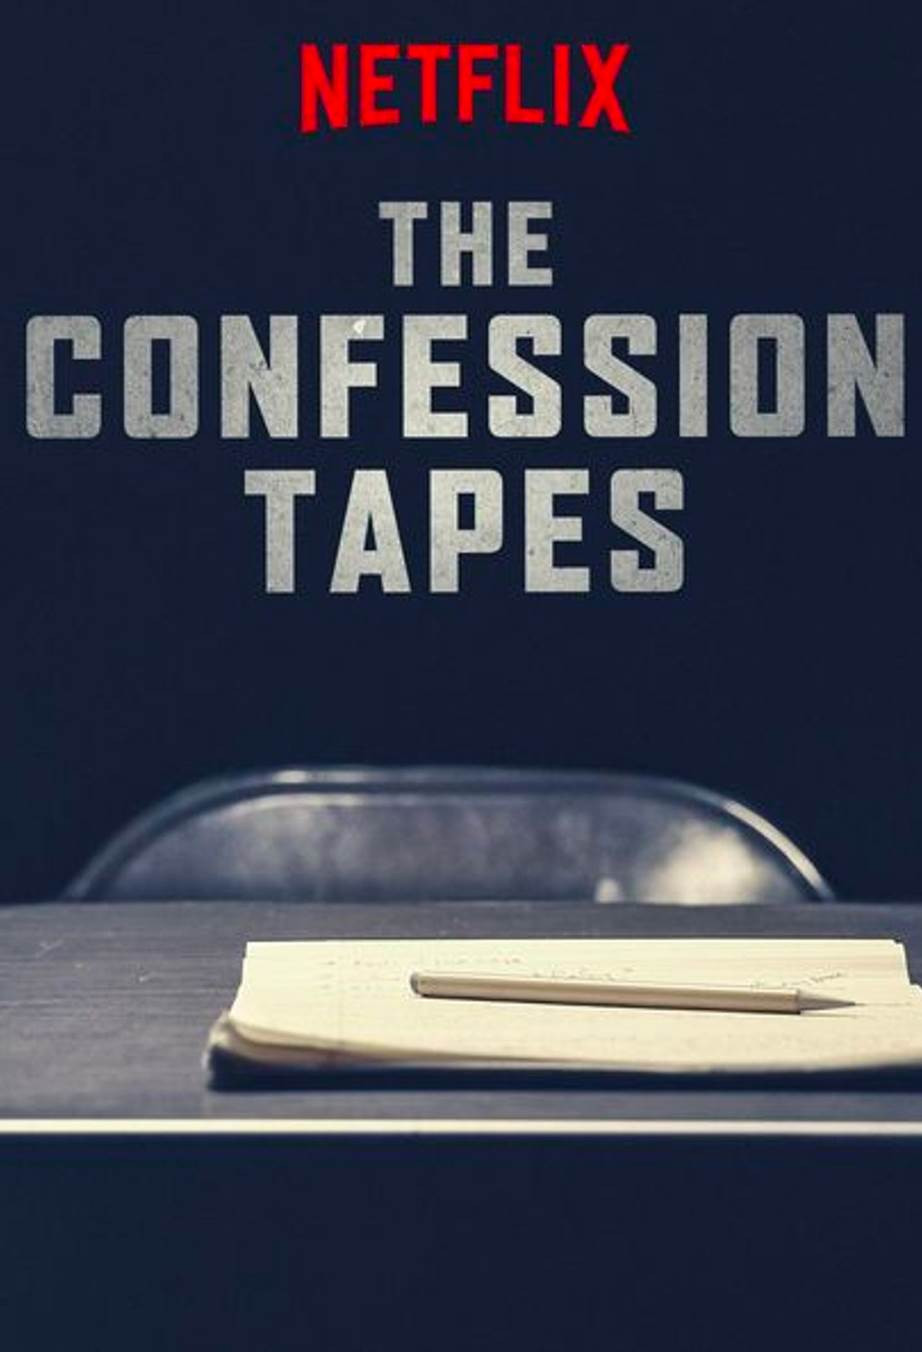 Best True Crime Series On Netflix Australia Right Now - The Confession Tapes